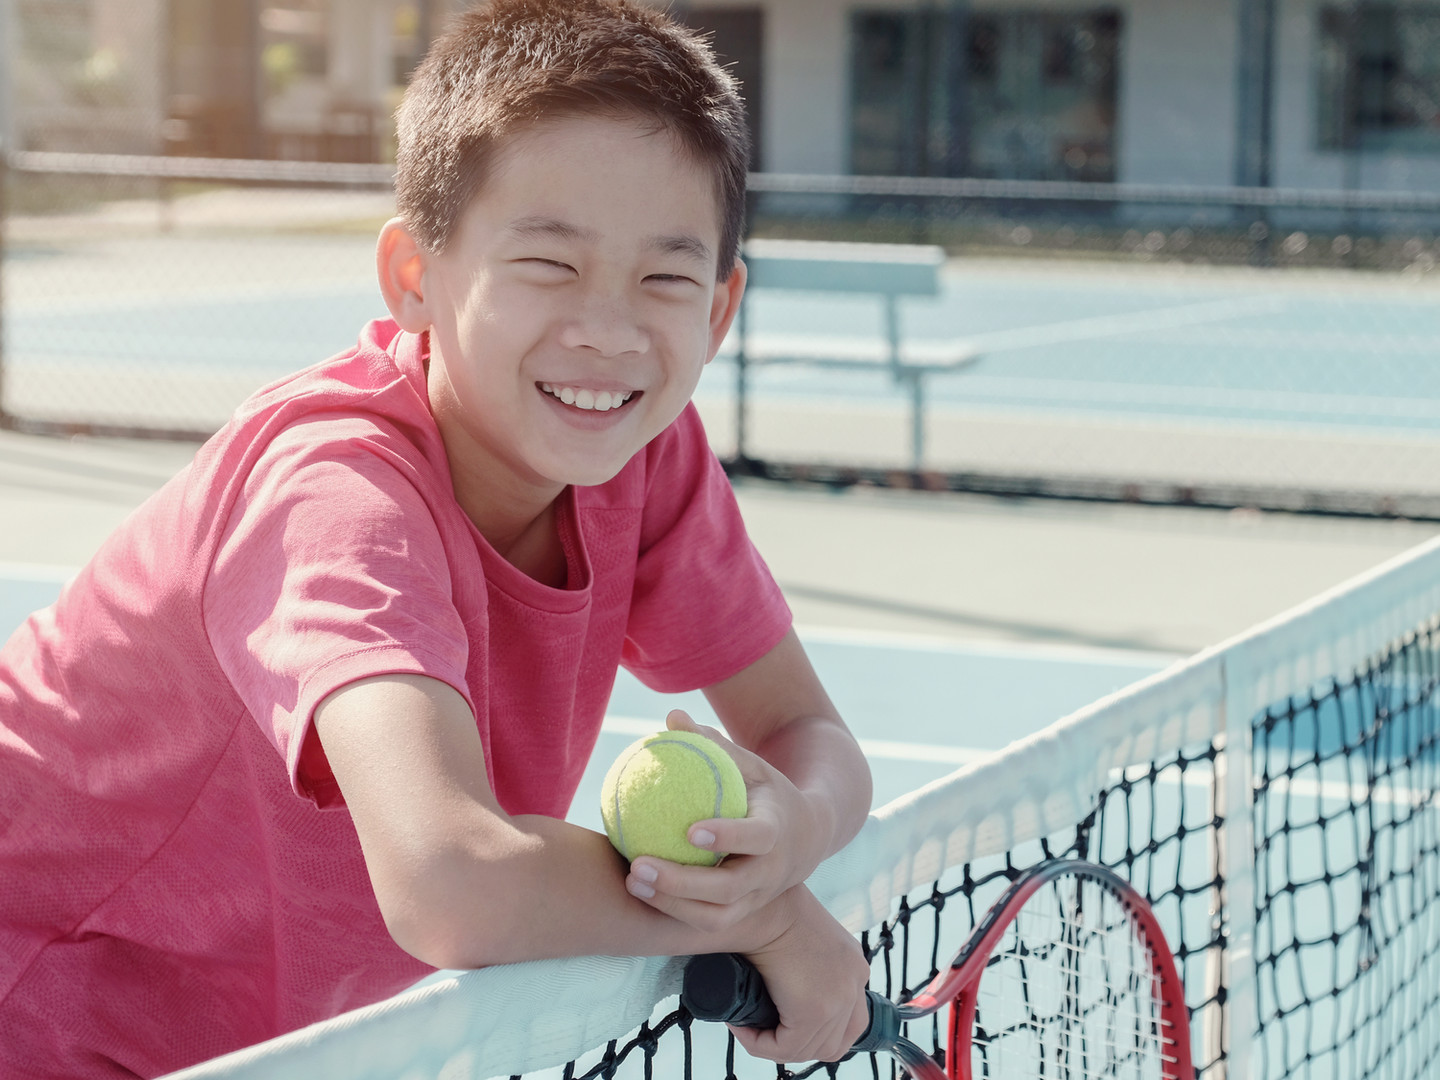 Boy on a Tennis Court